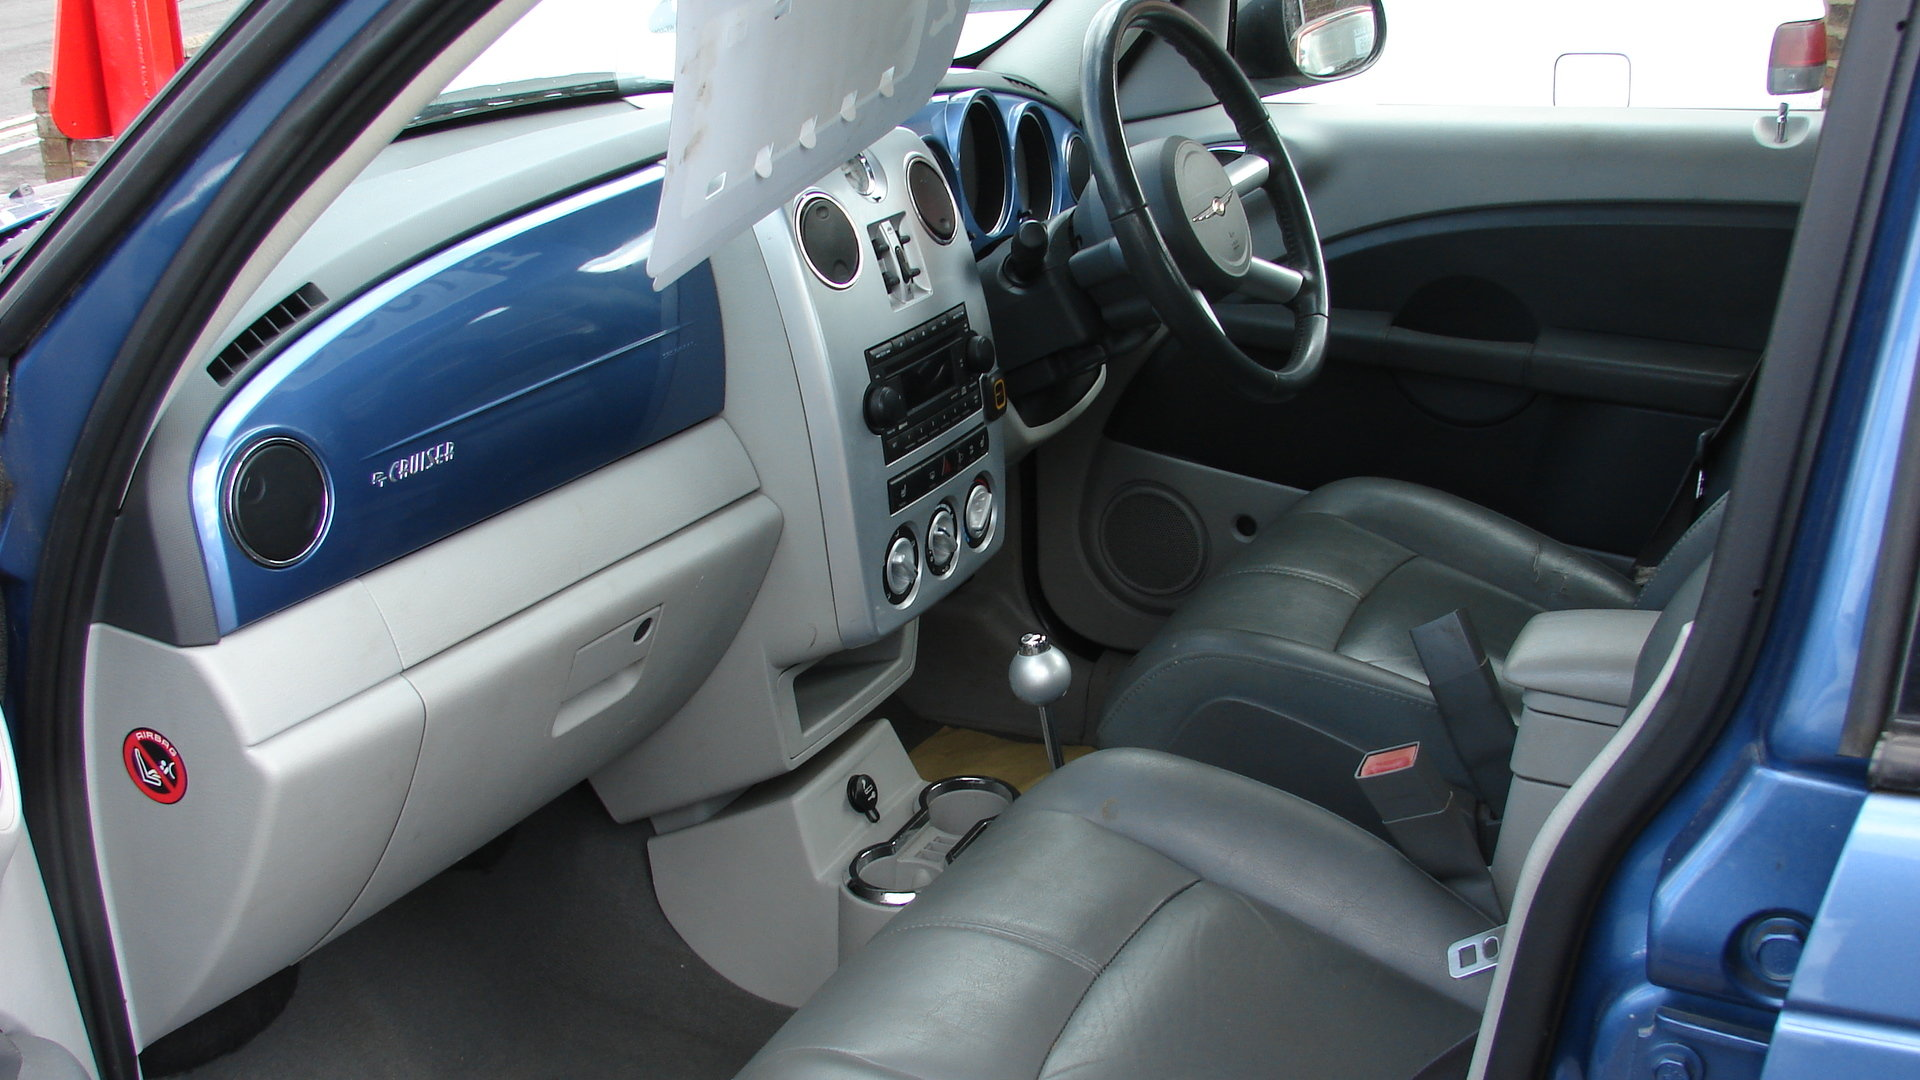 2006 PT Cruiser retro ride with new car drive For Sale (picture 4 of 6)